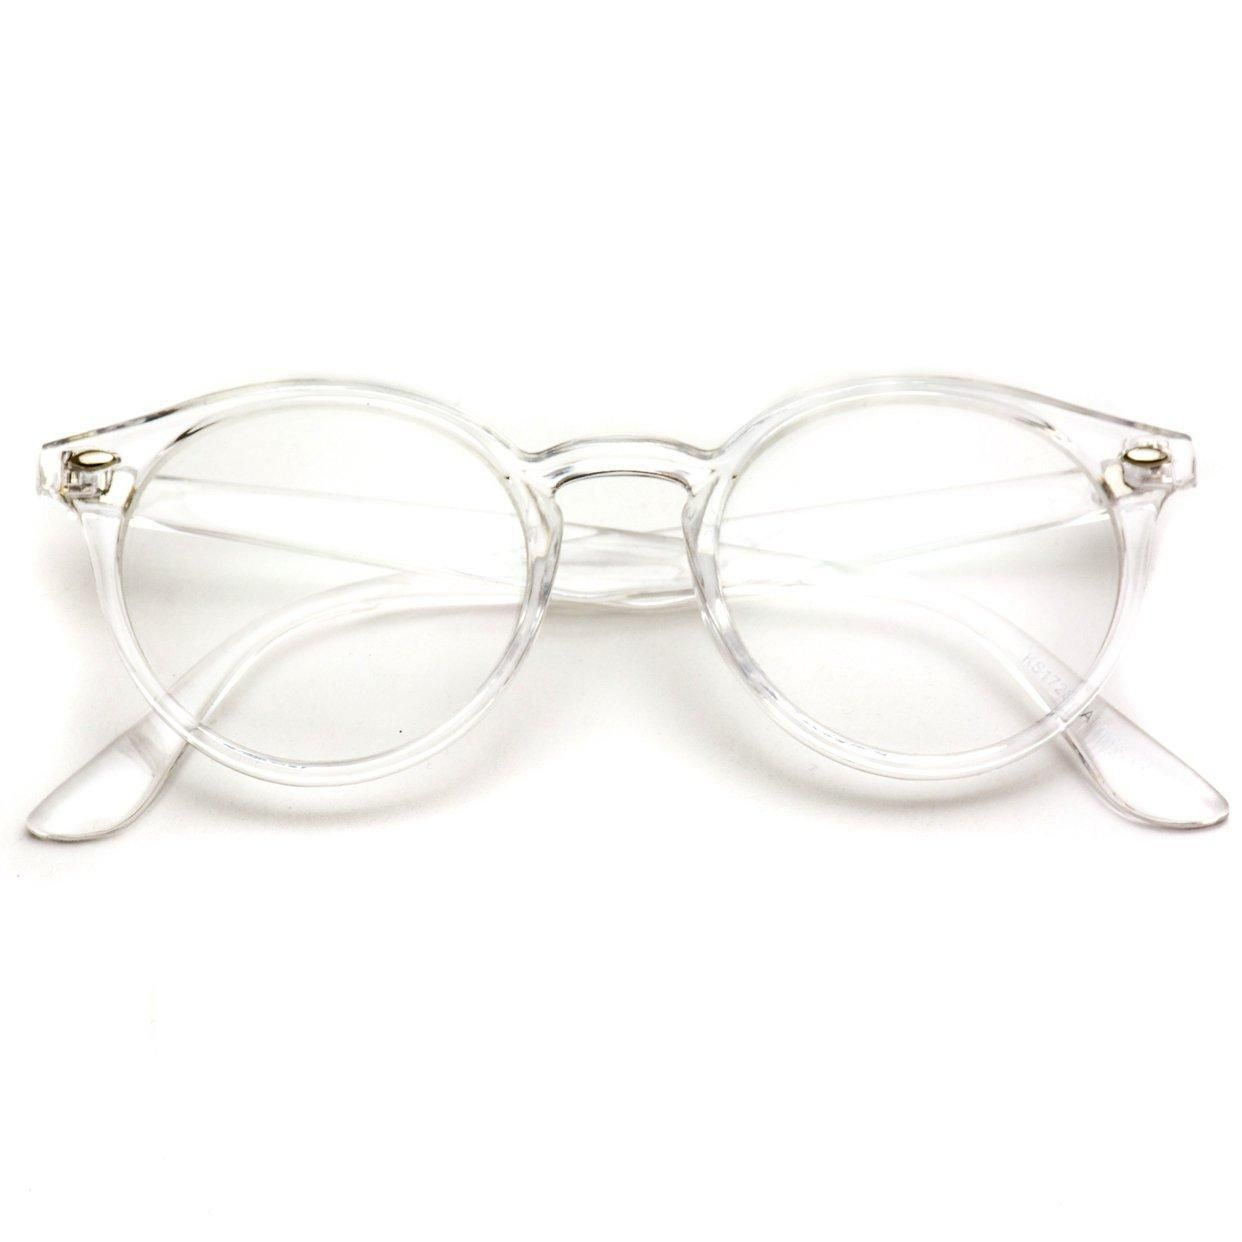 4a1456b613 Ainsley Transparent Round Clear Frame Glasses - Clear Optical ...